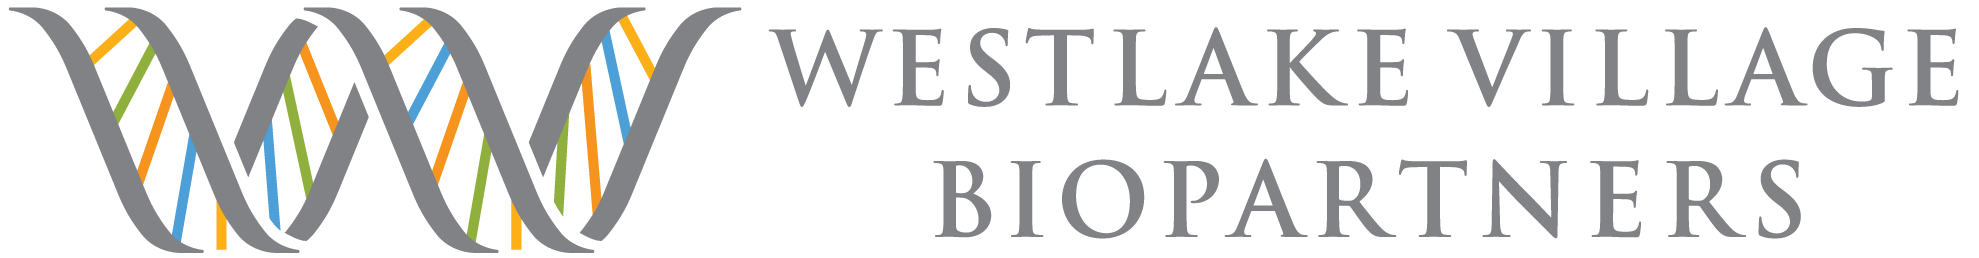 Westlake Village Biopartners